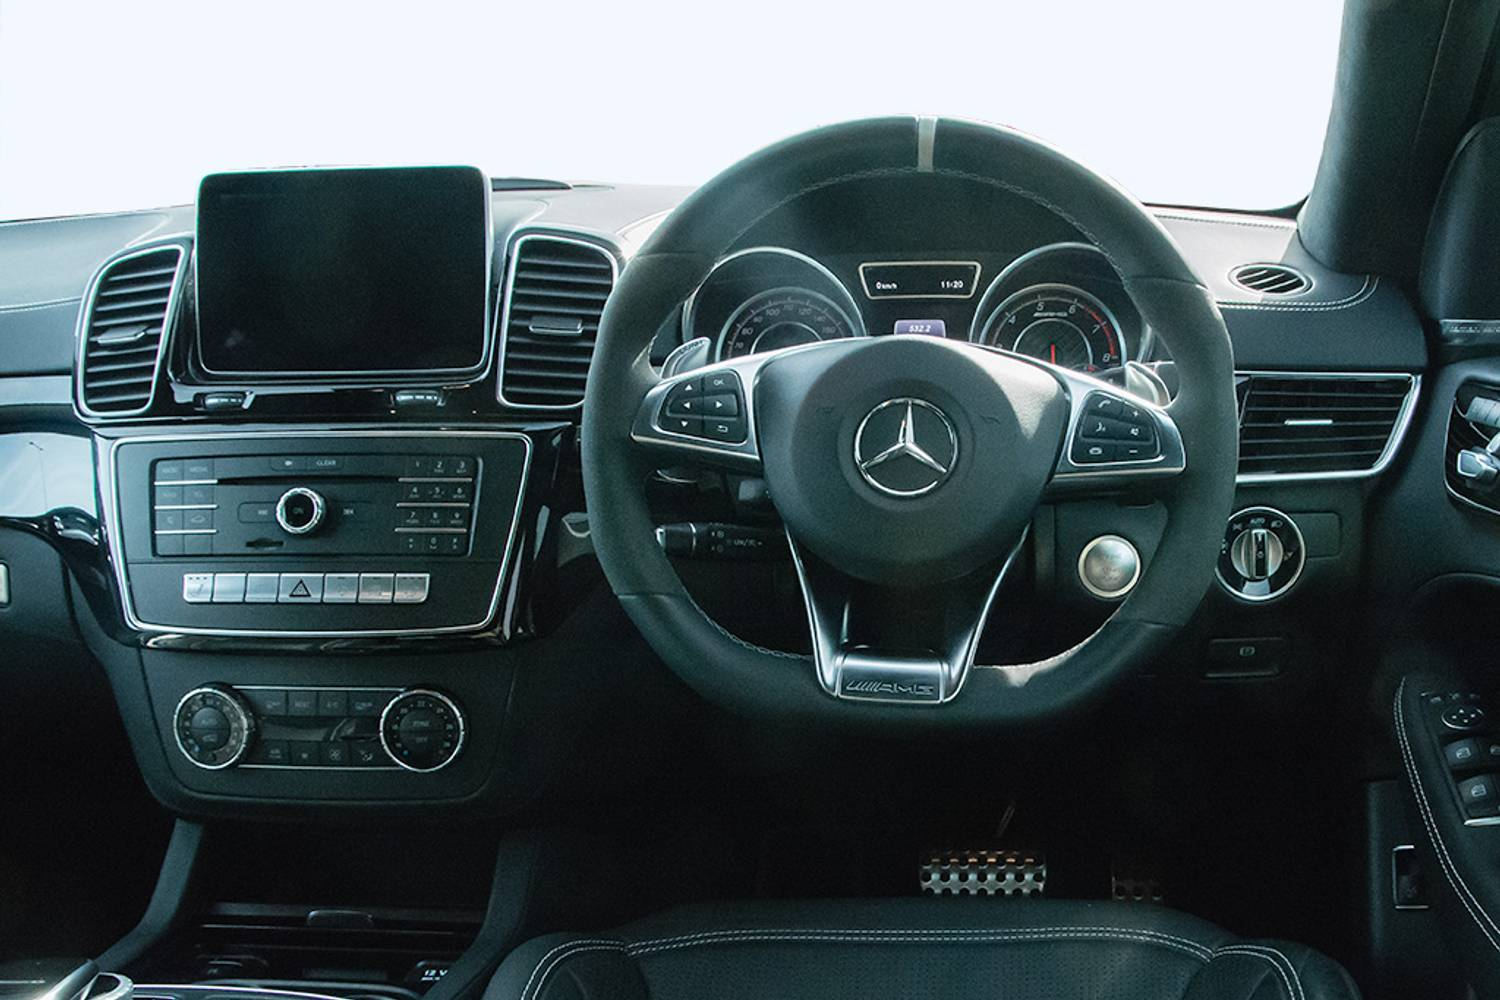 New Mercedes Benz Gle Amg Coupe Gle 63 S 4matic Night Edition 5 Door